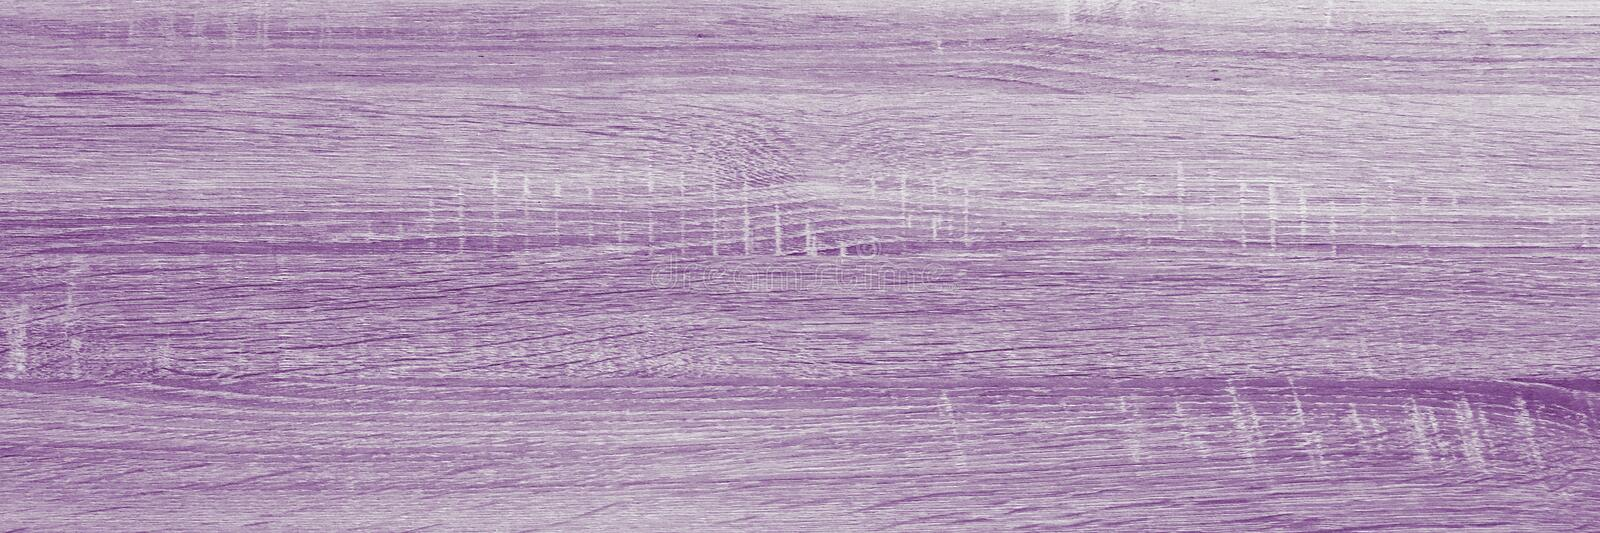 Wood purple background, light wooden abstract texture stock images